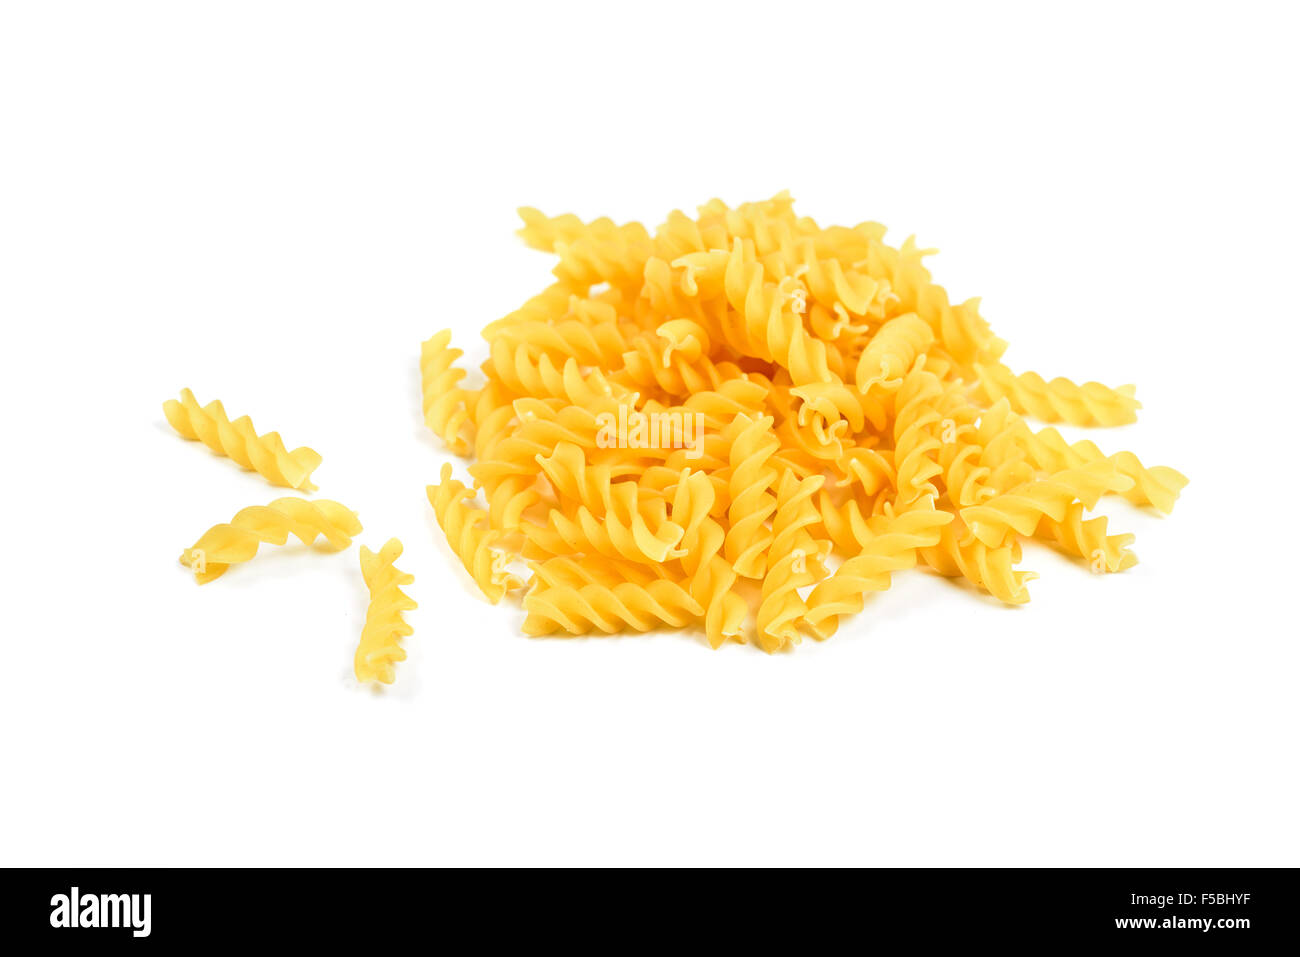 Rotini pasta heap and alone on white background - Stock Image